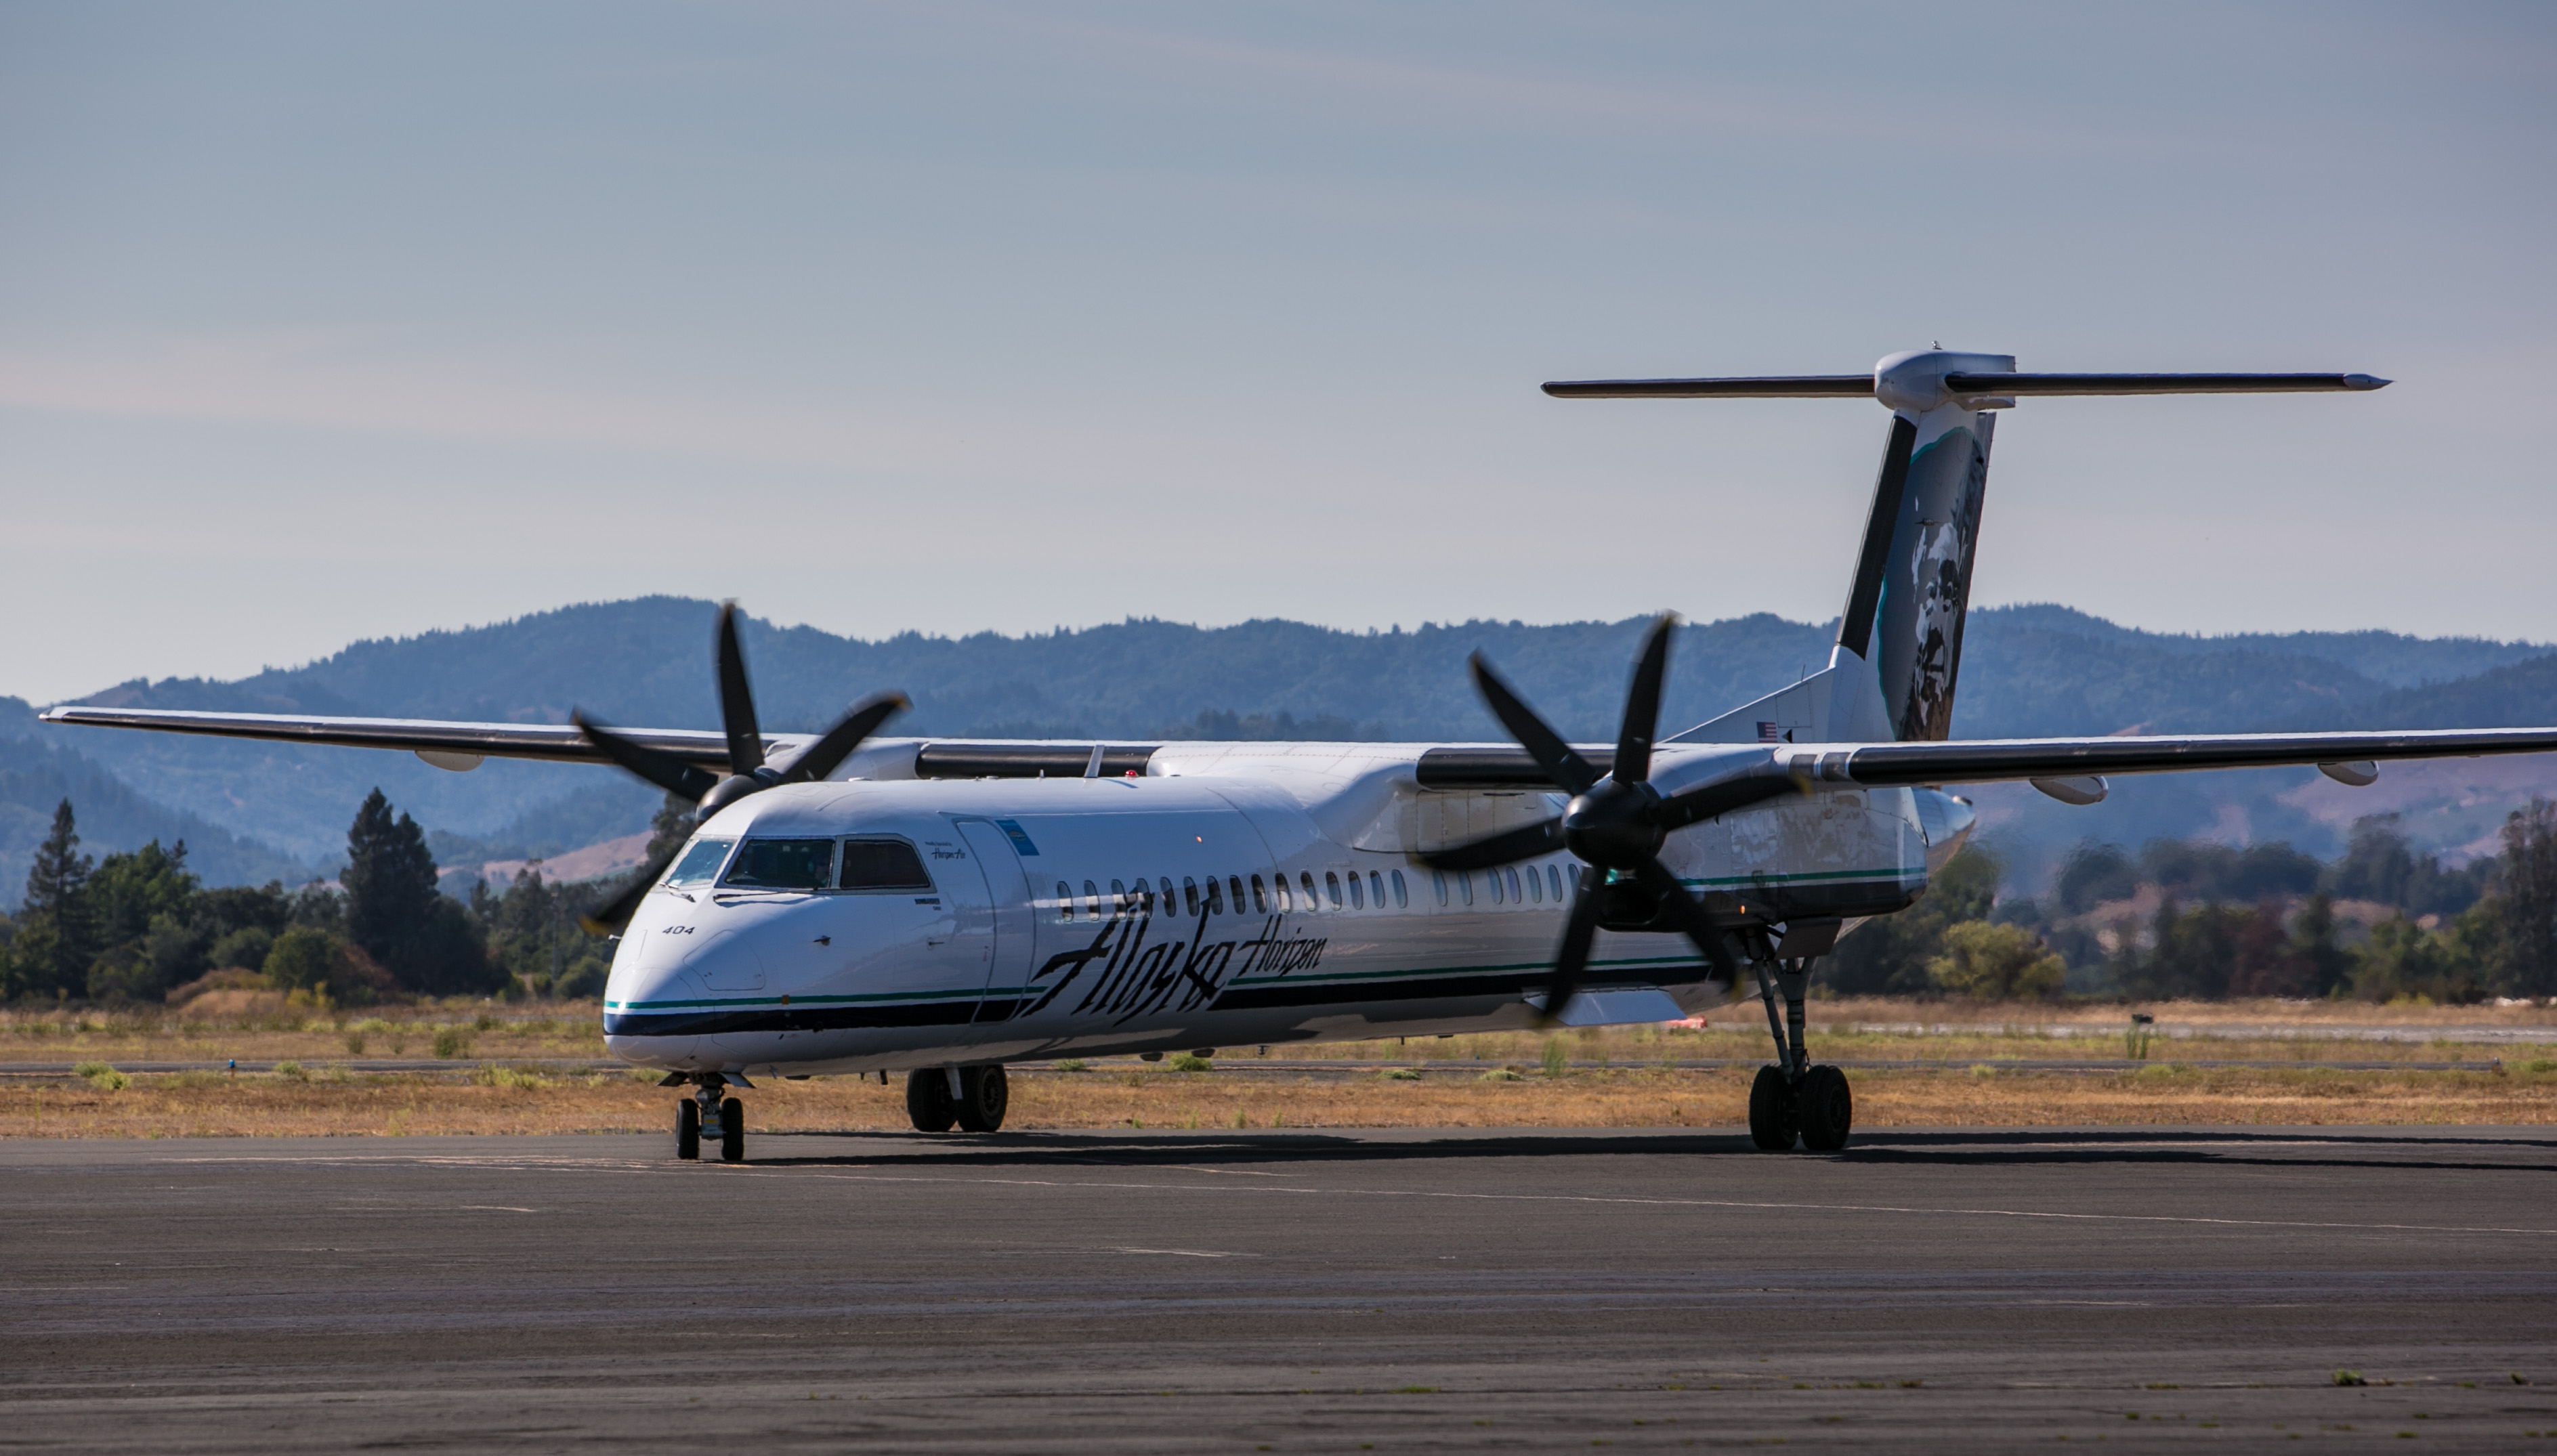 An Alaska Airlines Bombardier Q-400 regional turbo prop plane pulls into the gate at Charles M. Schulz Airport on August 27, 2014, near Healdsburg, California.